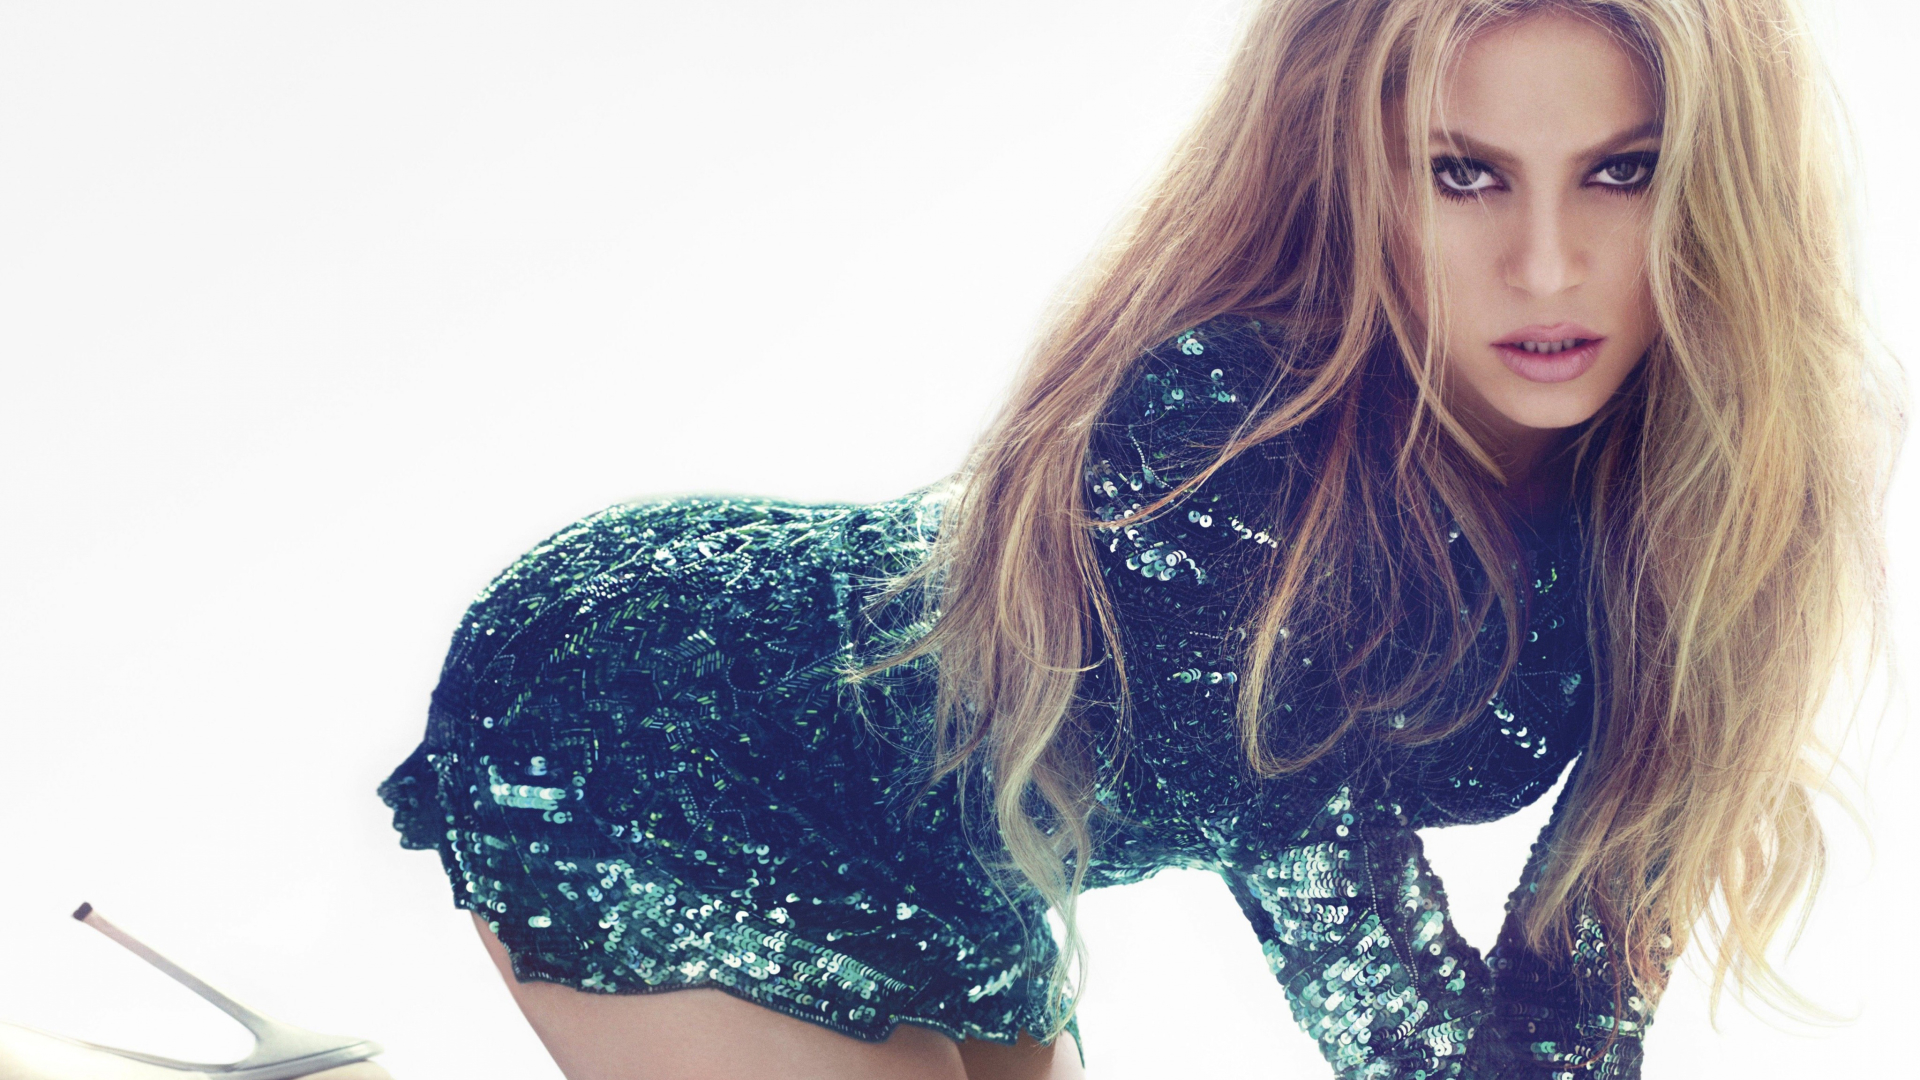 1920x1080 Shakira Hot Wallpapers 1080p Laptop Full Hd